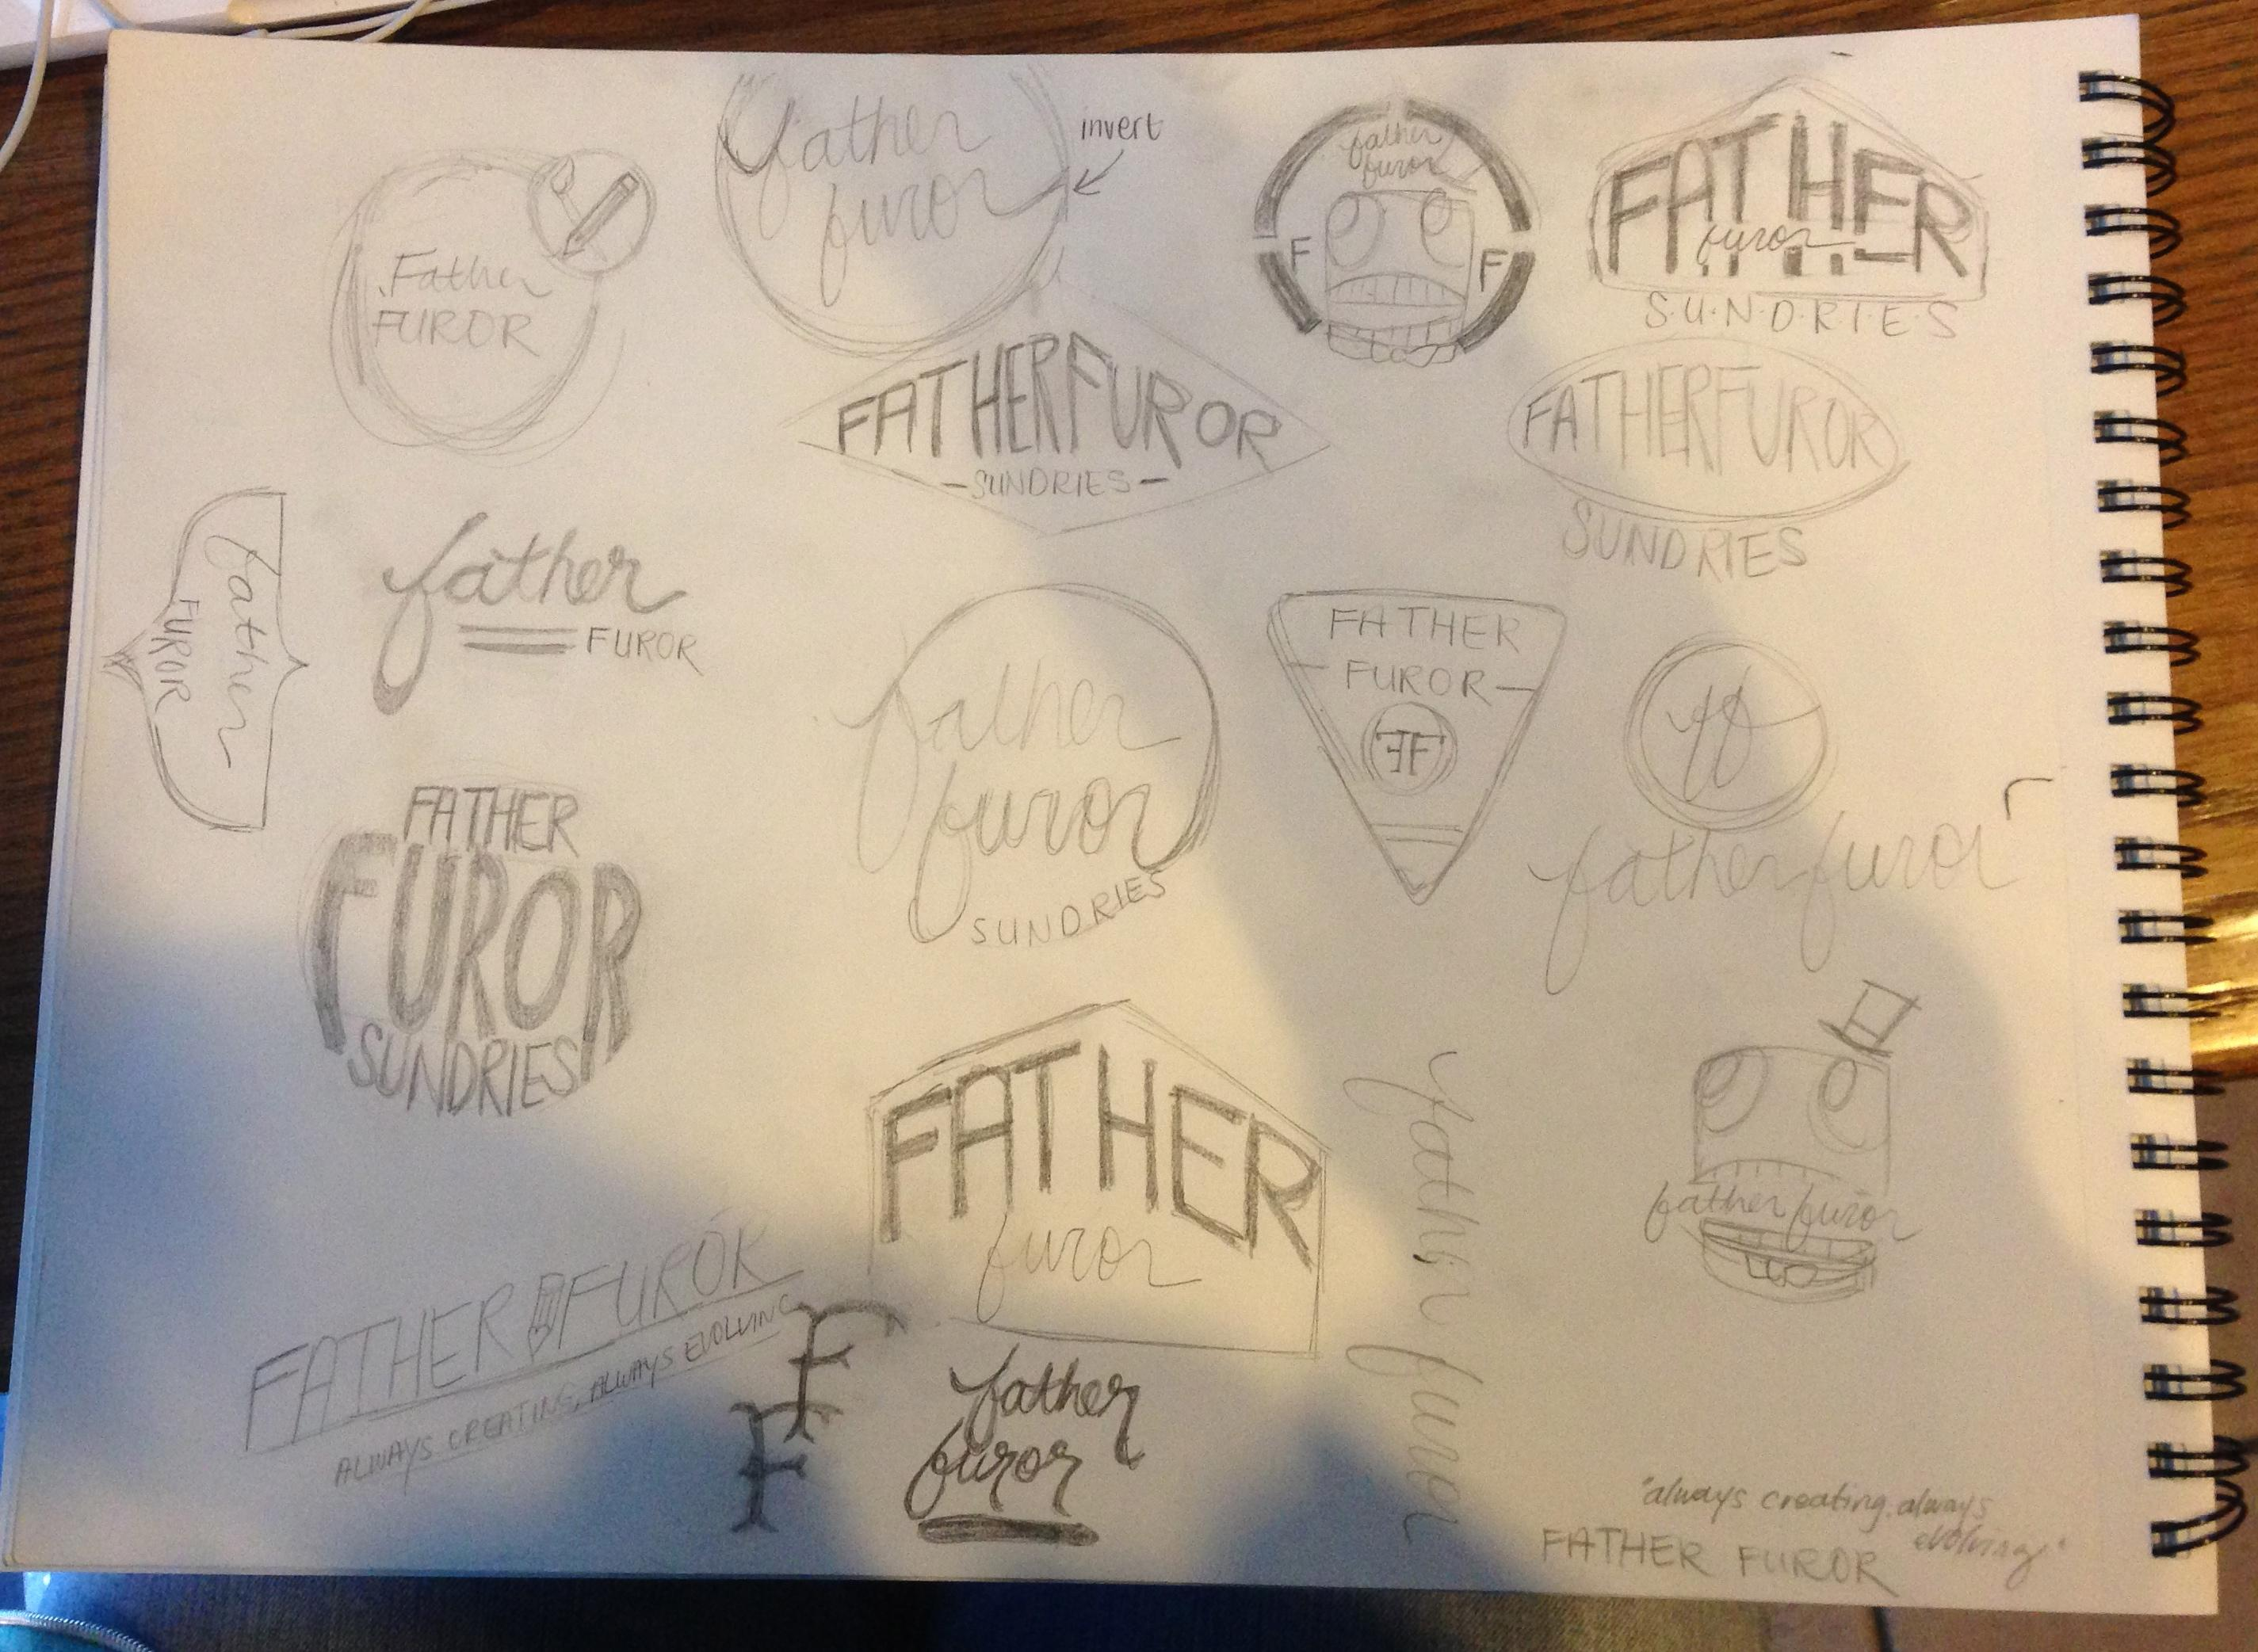 father furor sundries (clothing and various apparels) - image 1 - student project